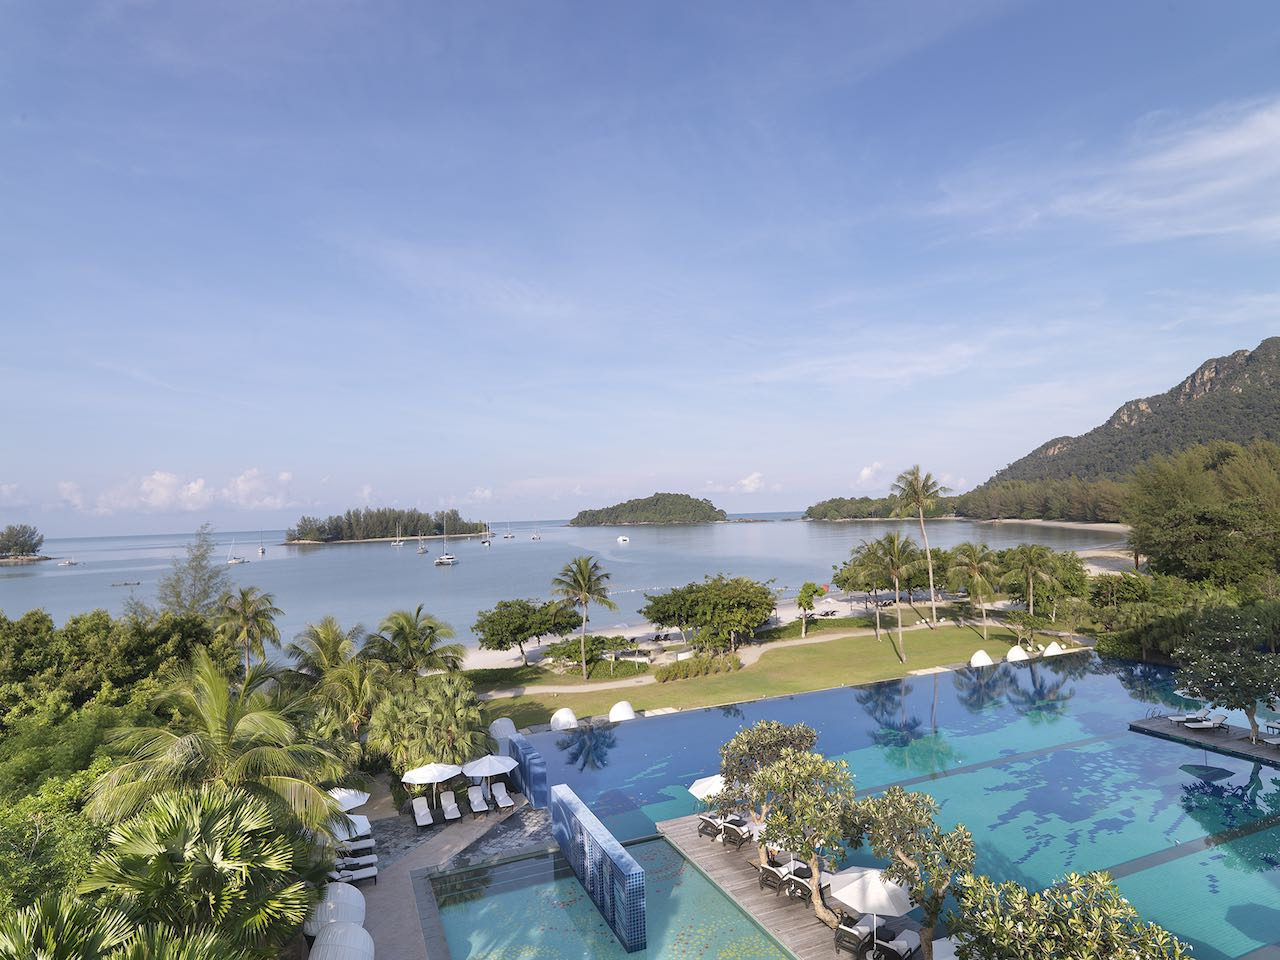 Panorama view of the Danna Langkawi hotel overlooking the infinity pool and The Andaman Sea